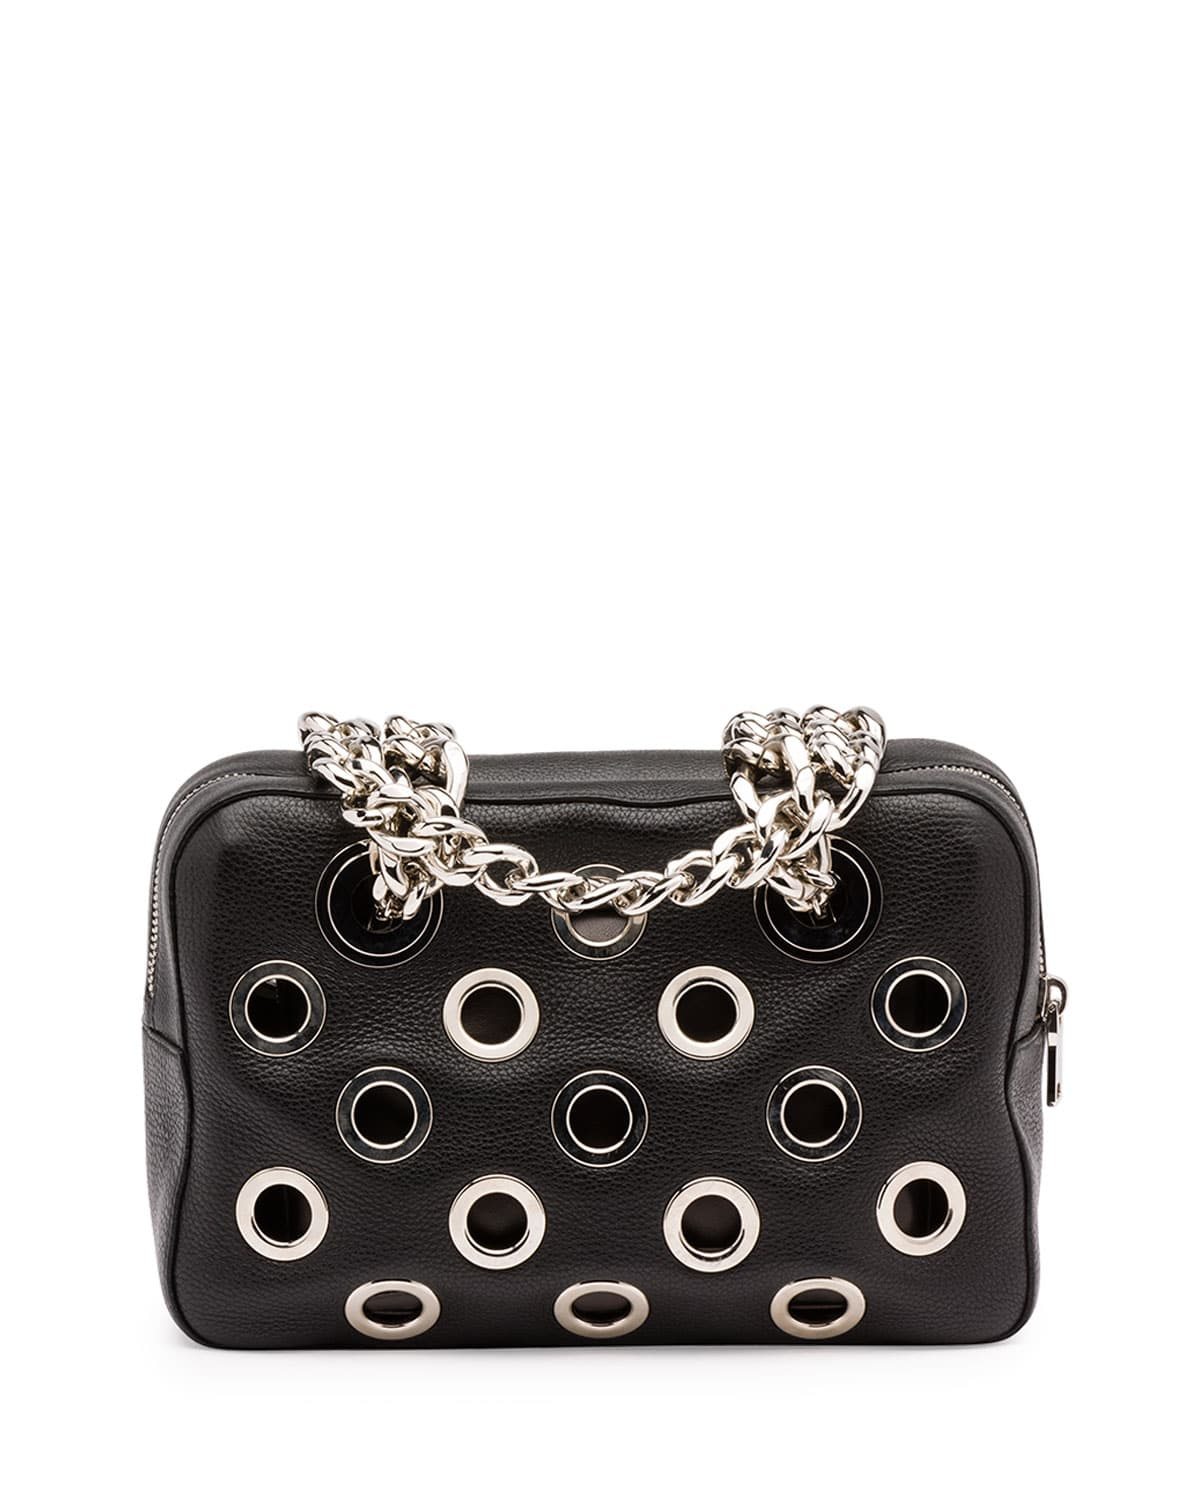 prada handbags for sale online - Prada Resort 2016 Bag Collection Featuring Perforated Handbags ...